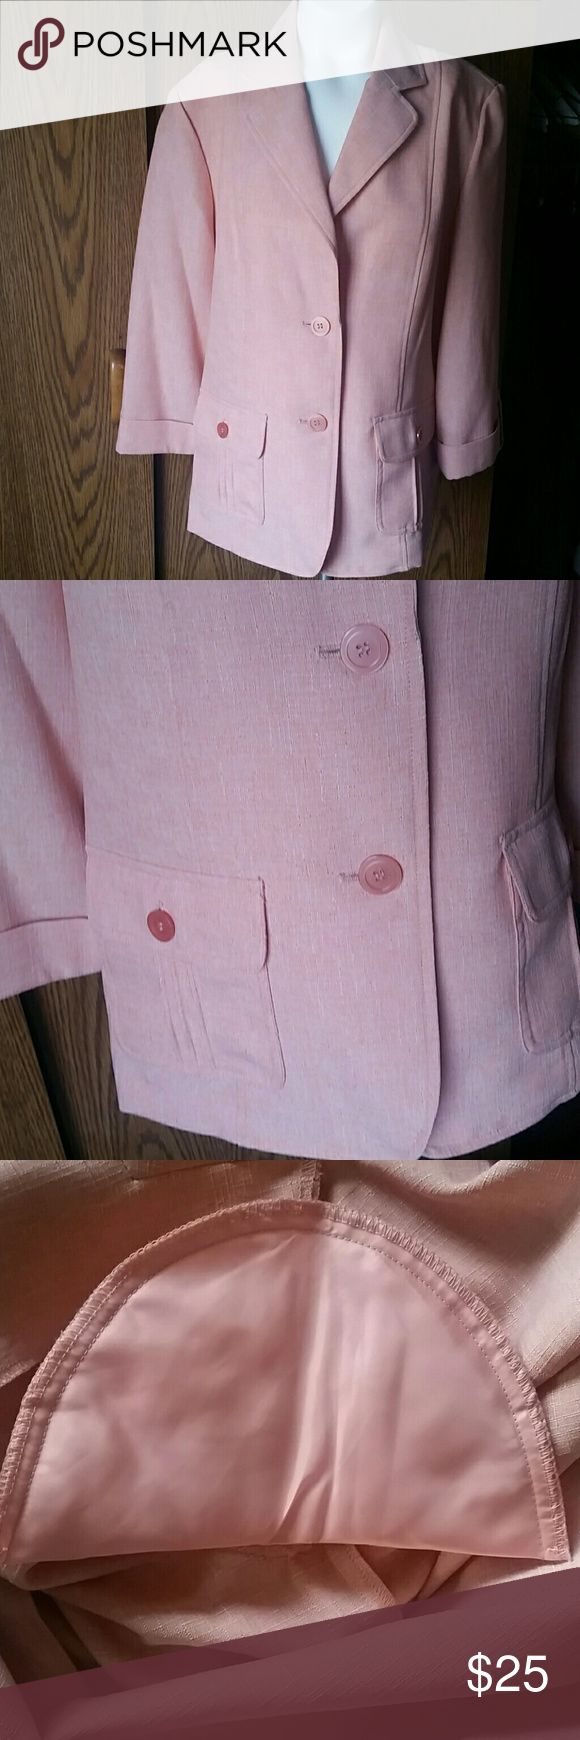 Alfred Dunner peach blazer Alfred Dunner peach blazer. It's in great condition! Has shoulder pads and 2 front pockets. No marks or flaws.  Brand: Alfred Dunner Size: 14 Plus size Color: light pink or peach Material is 100% polyester   Make me offers! Love to bundle! Alfred Dunner Jackets & Coats Blazers